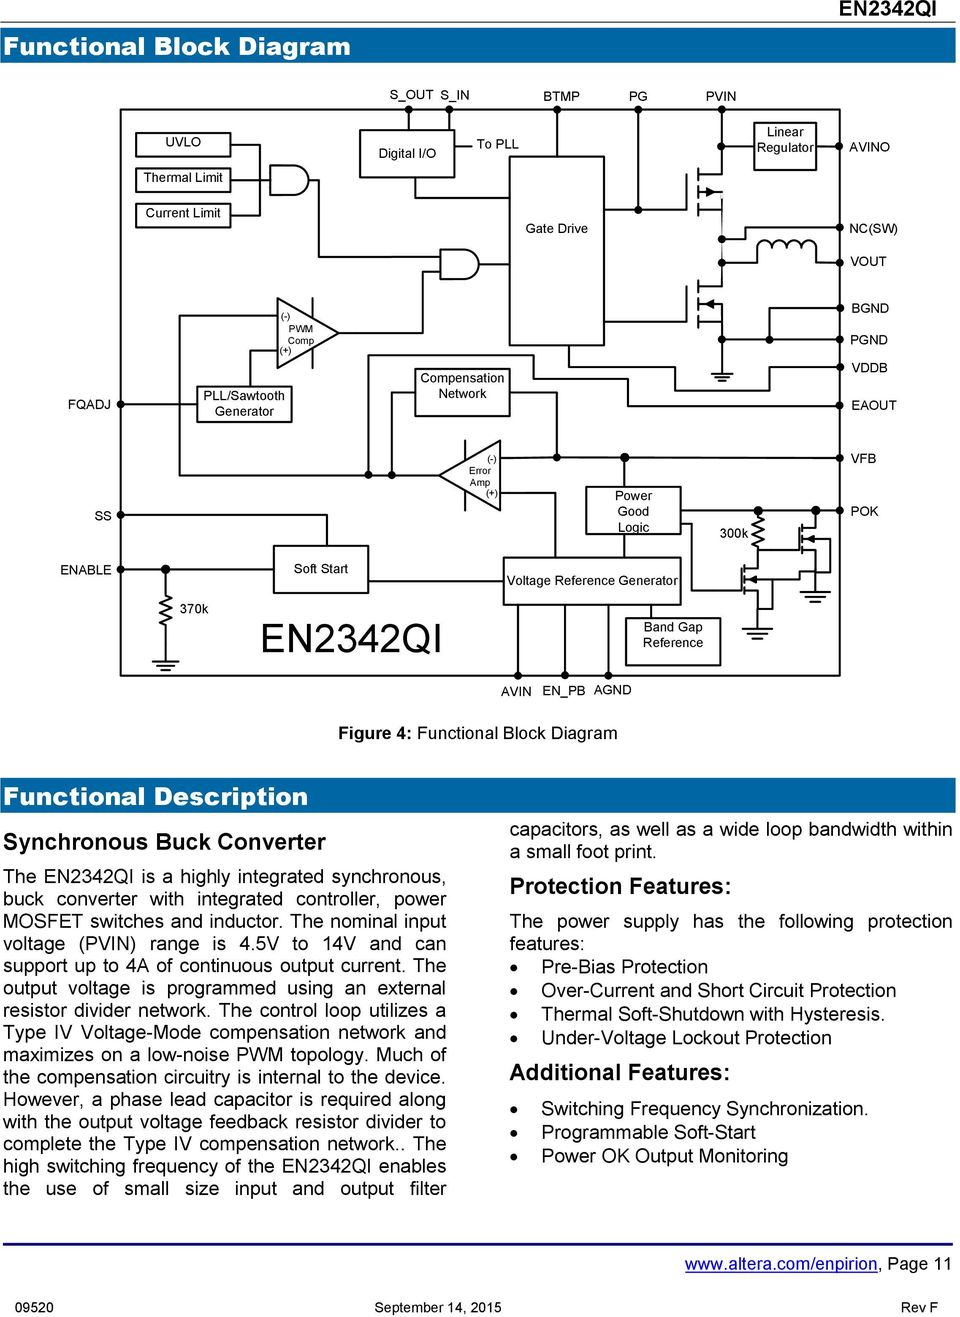 Enpirion Power Datasheet En2342qi 4a Powersoc Voltage Mode Mosfet Switching Short Circuit Protection Need Help Functional Description Synchronous Buck Converter The Is A Highly Integrated With